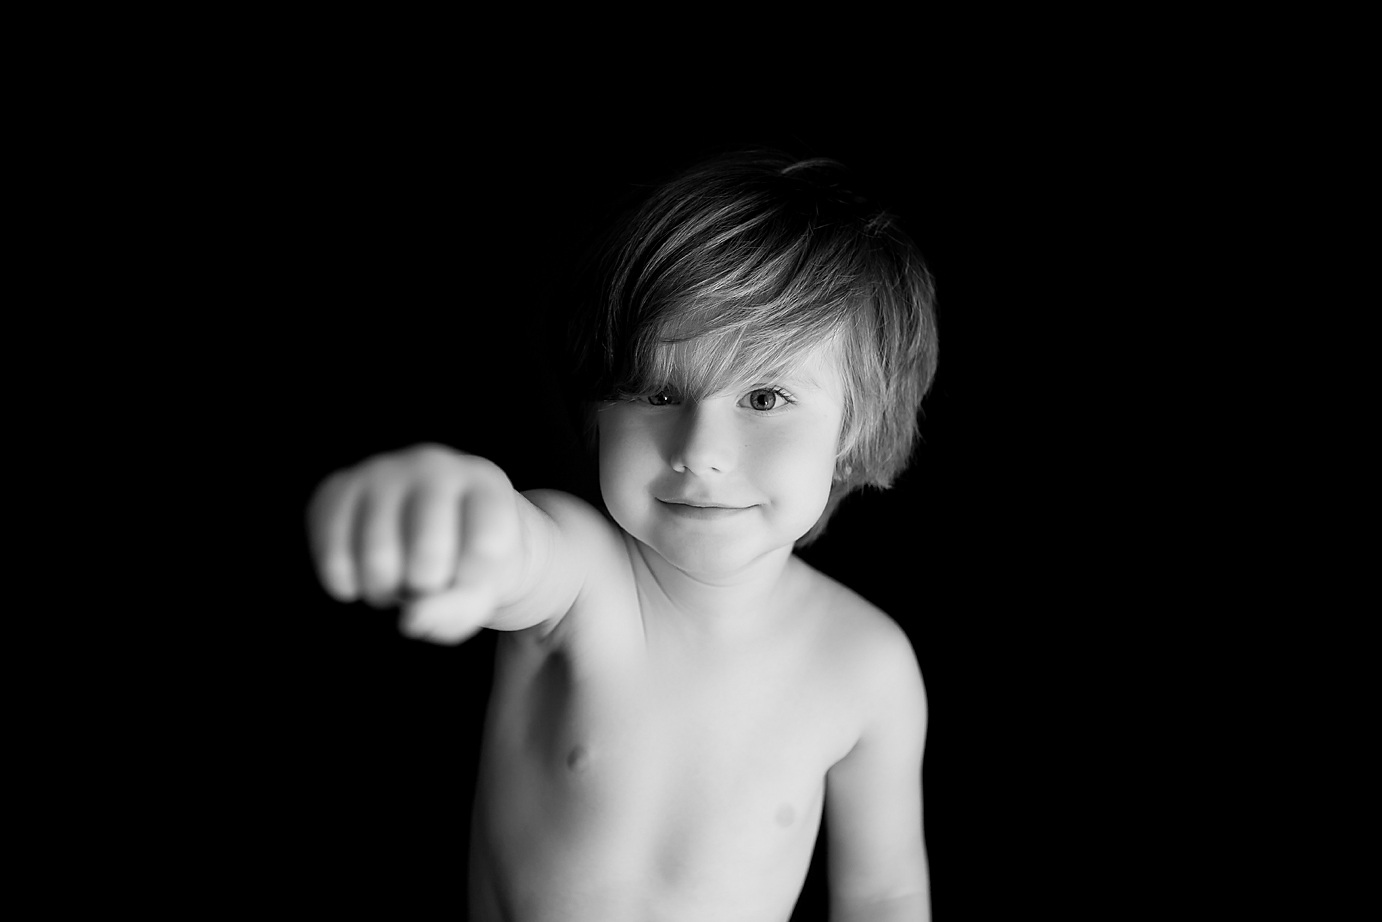 orange-county-child-photography-studio-black-and-white-simplicity-session.jpg